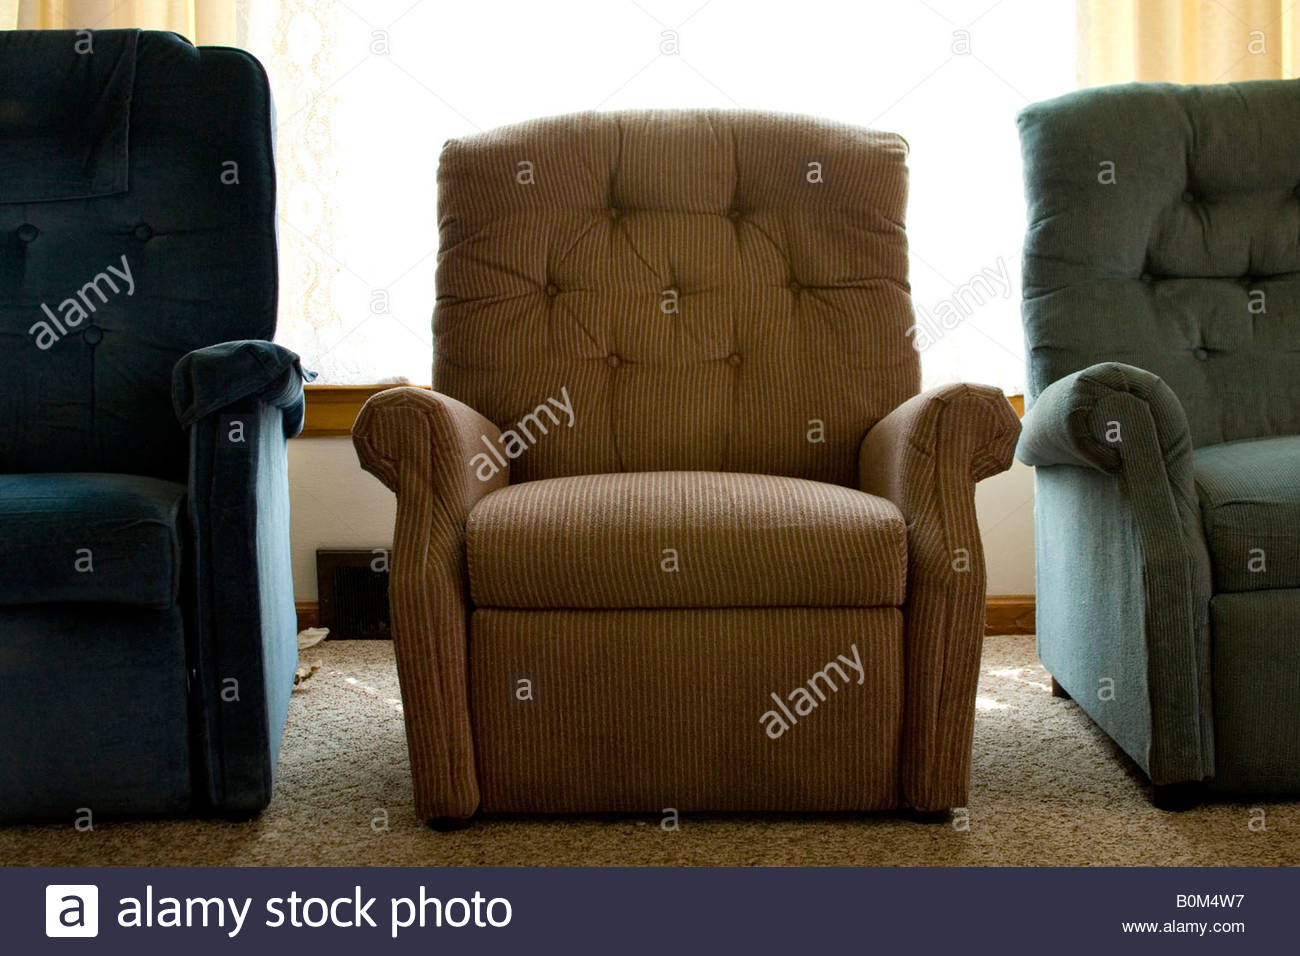 Stock Photo - chairs arm chairs recliners retro USA American & chairs arm chairs recliners retro USA American Stock Photo ... islam-shia.org